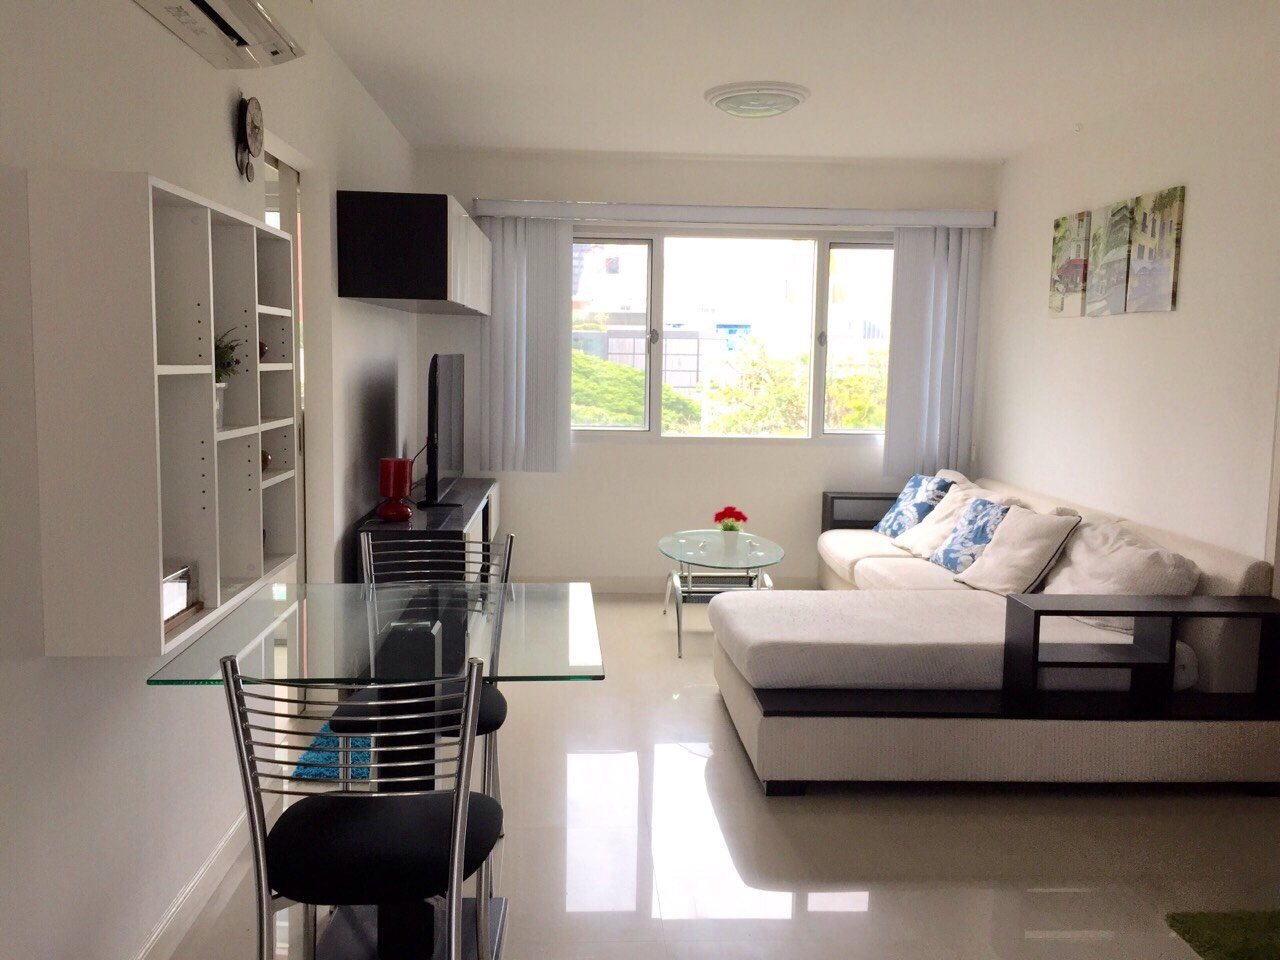 RE/MAX All Star Realty Agency's Beautiful One-Bed Condo for sale/rent at Thong Lor BTS 22,000 baht only (Sukhumvit Soi 40) 2